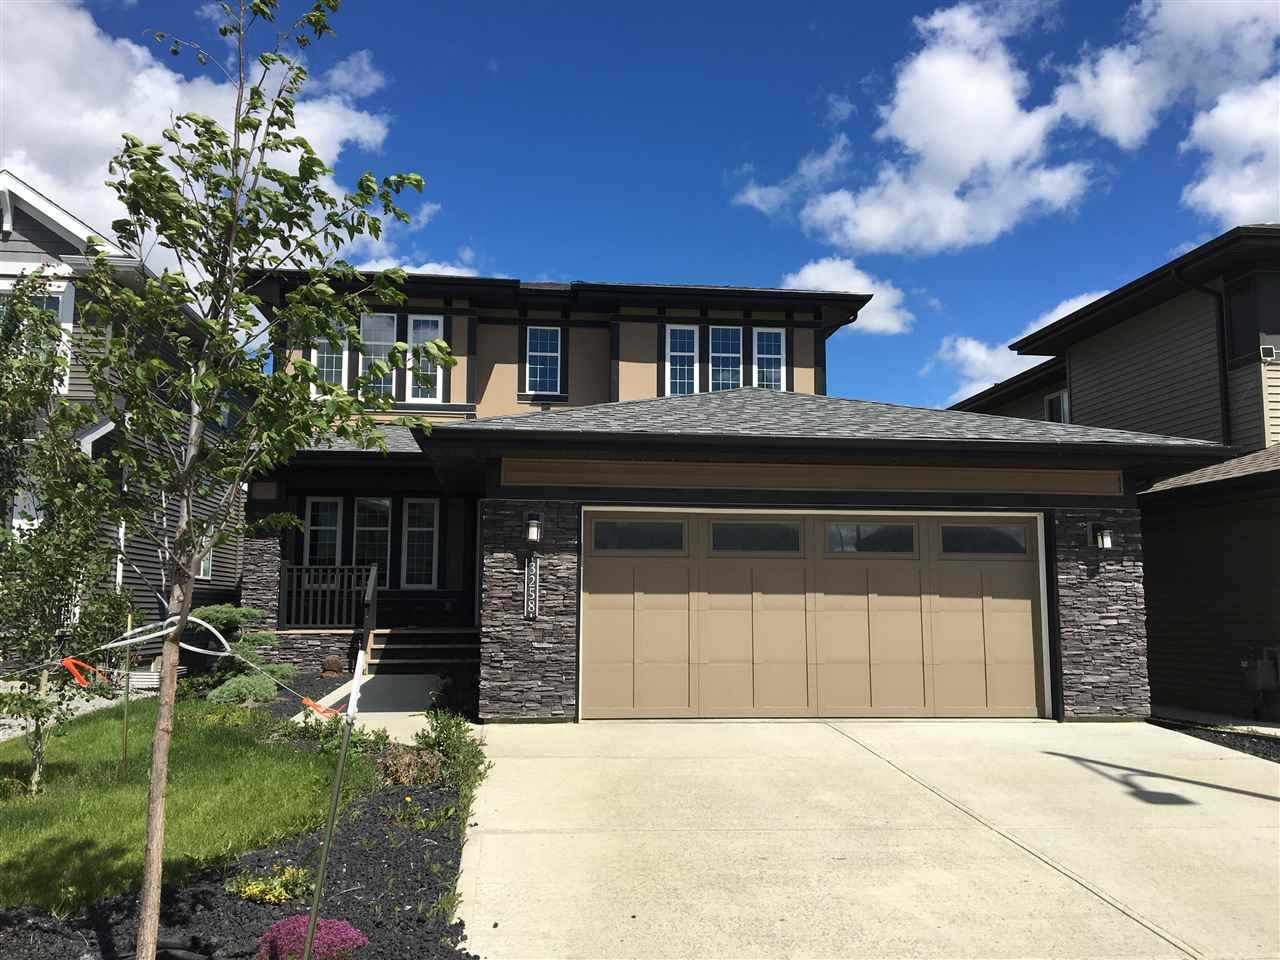 Main Photo: 3258 WINSPEAR Crescent in Edmonton: Zone 53 House for sale : MLS(r) # E4070895